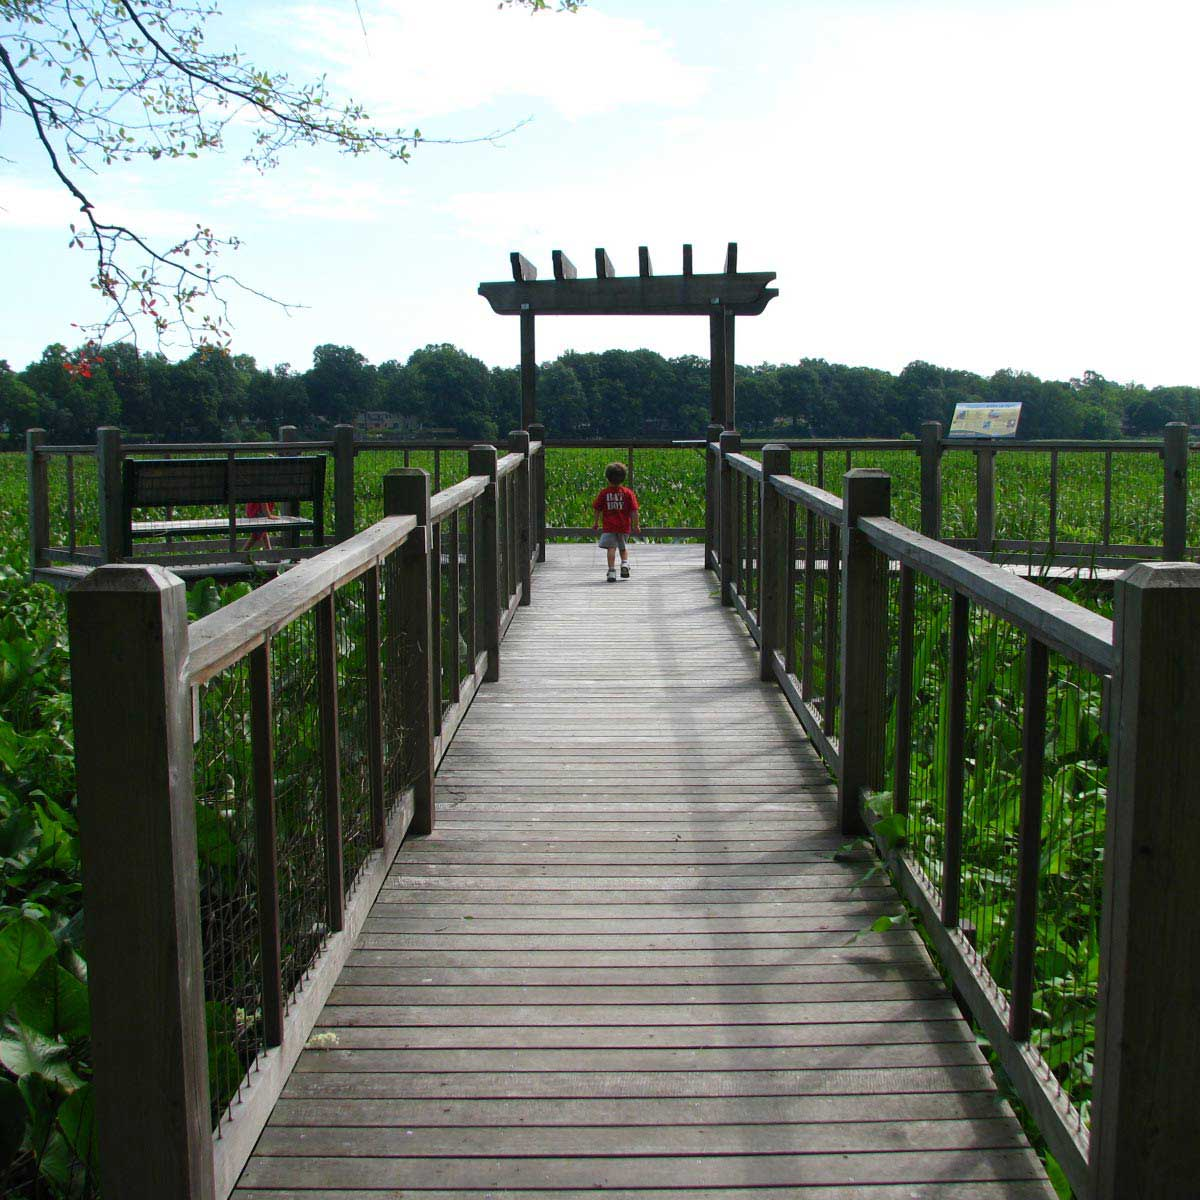 There is a lovely boardwalk to enjoy at Boundary Creek Natural Resource Area near Moorestown, NJ.